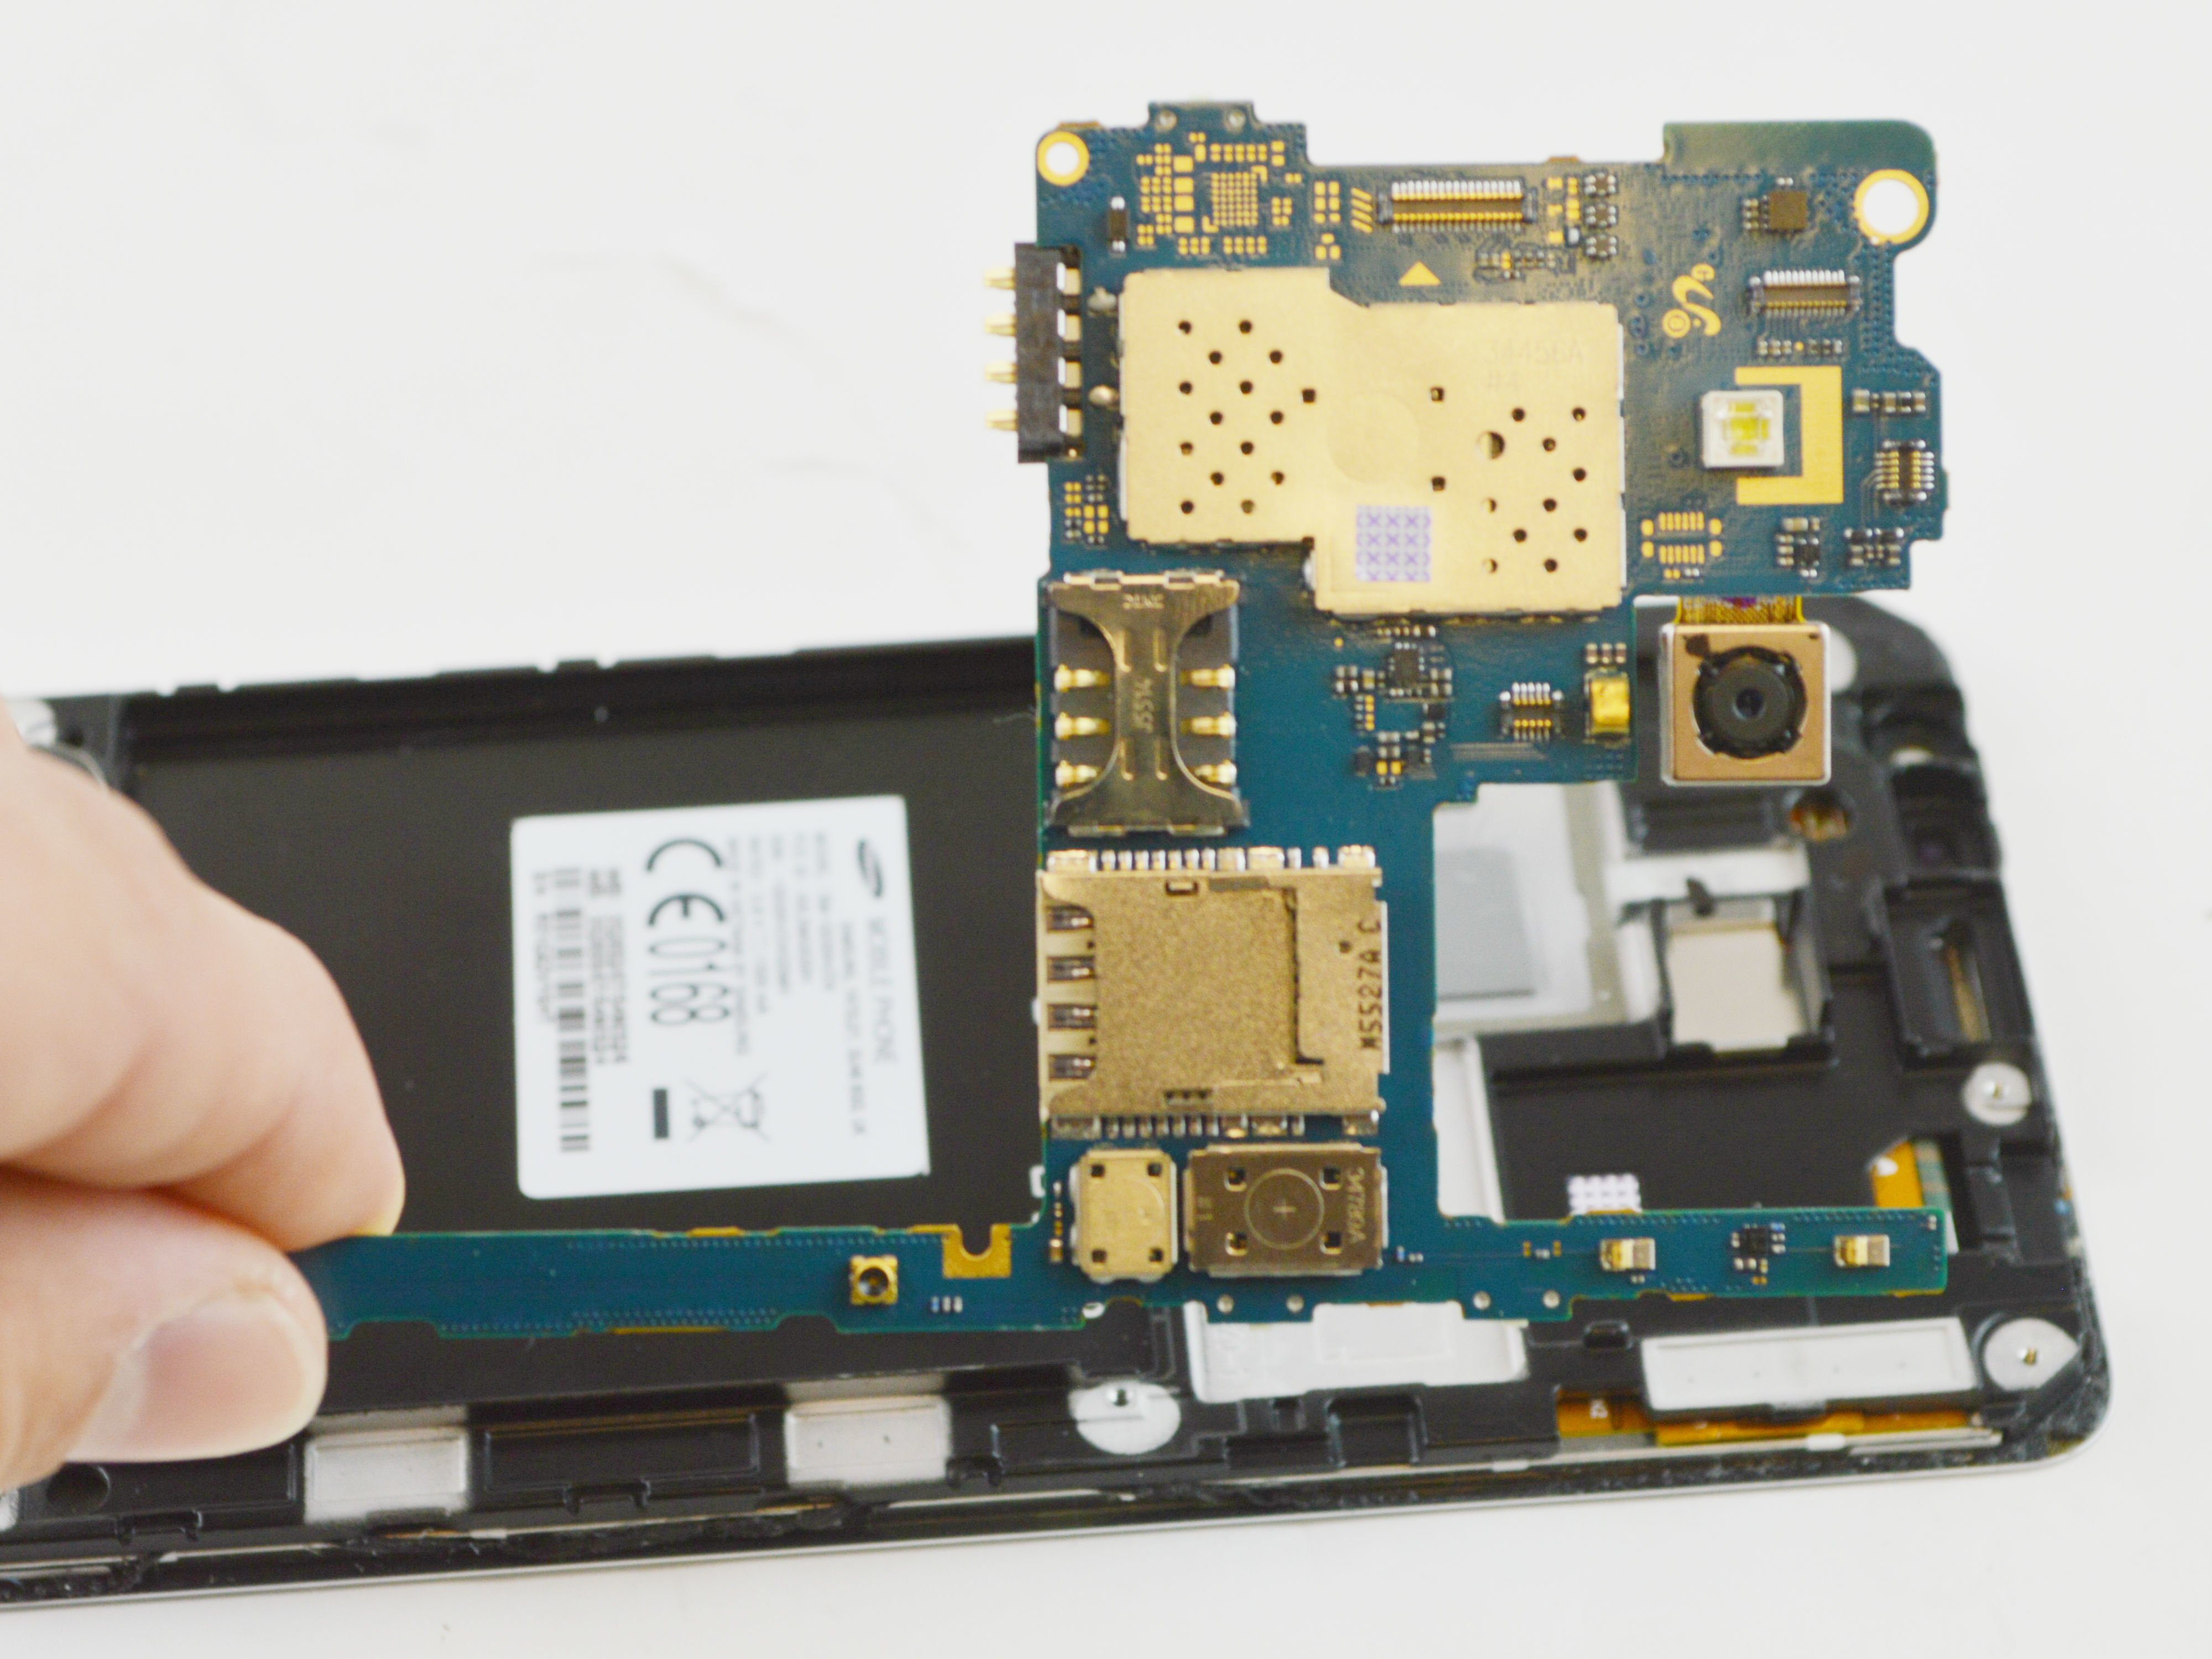 Samsung Galaxy Grand Prime Motherboard Replacement - iFixit Repair Guide